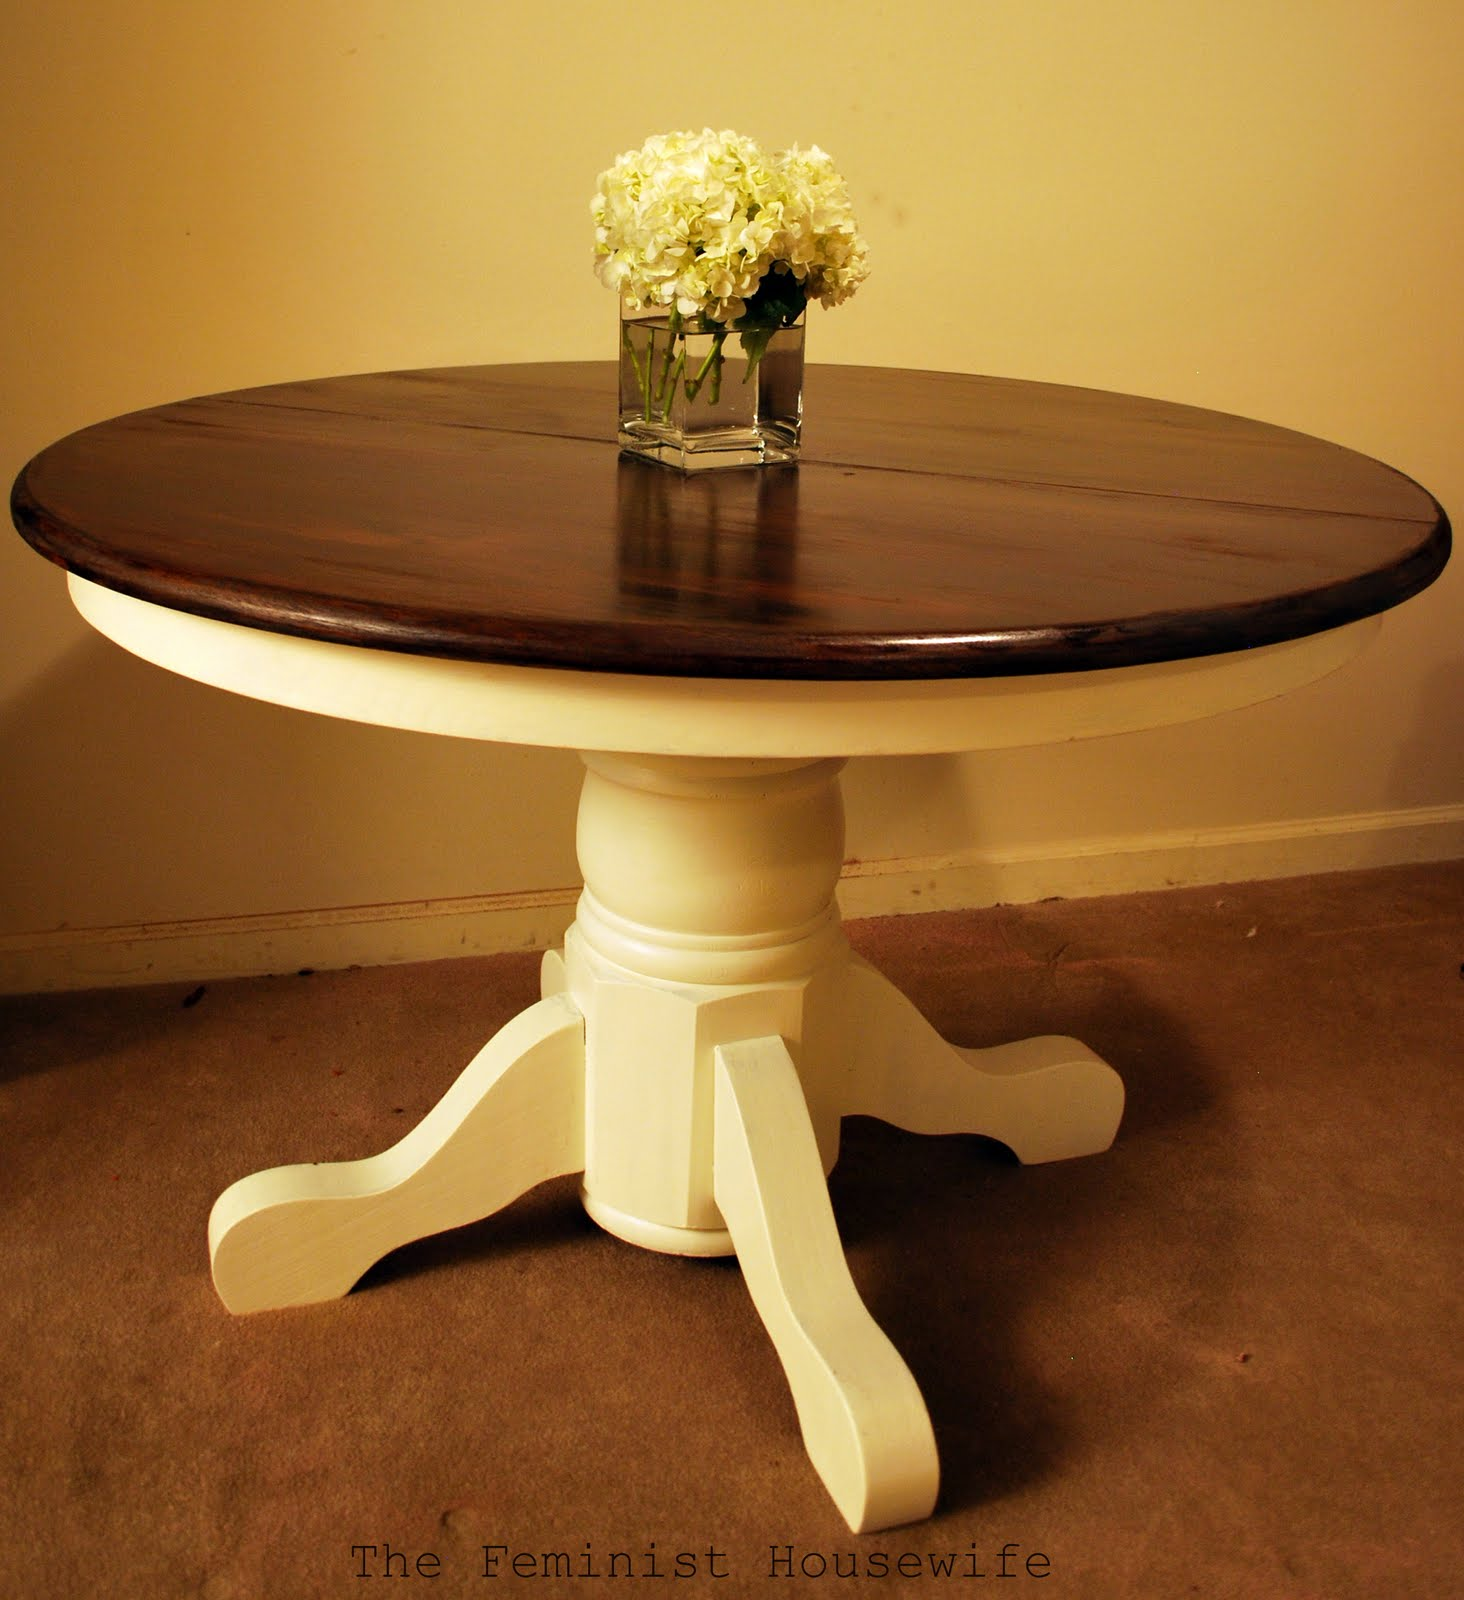 kitchen update ideas on The Feminist Housewife: Pedestal Table FAQ